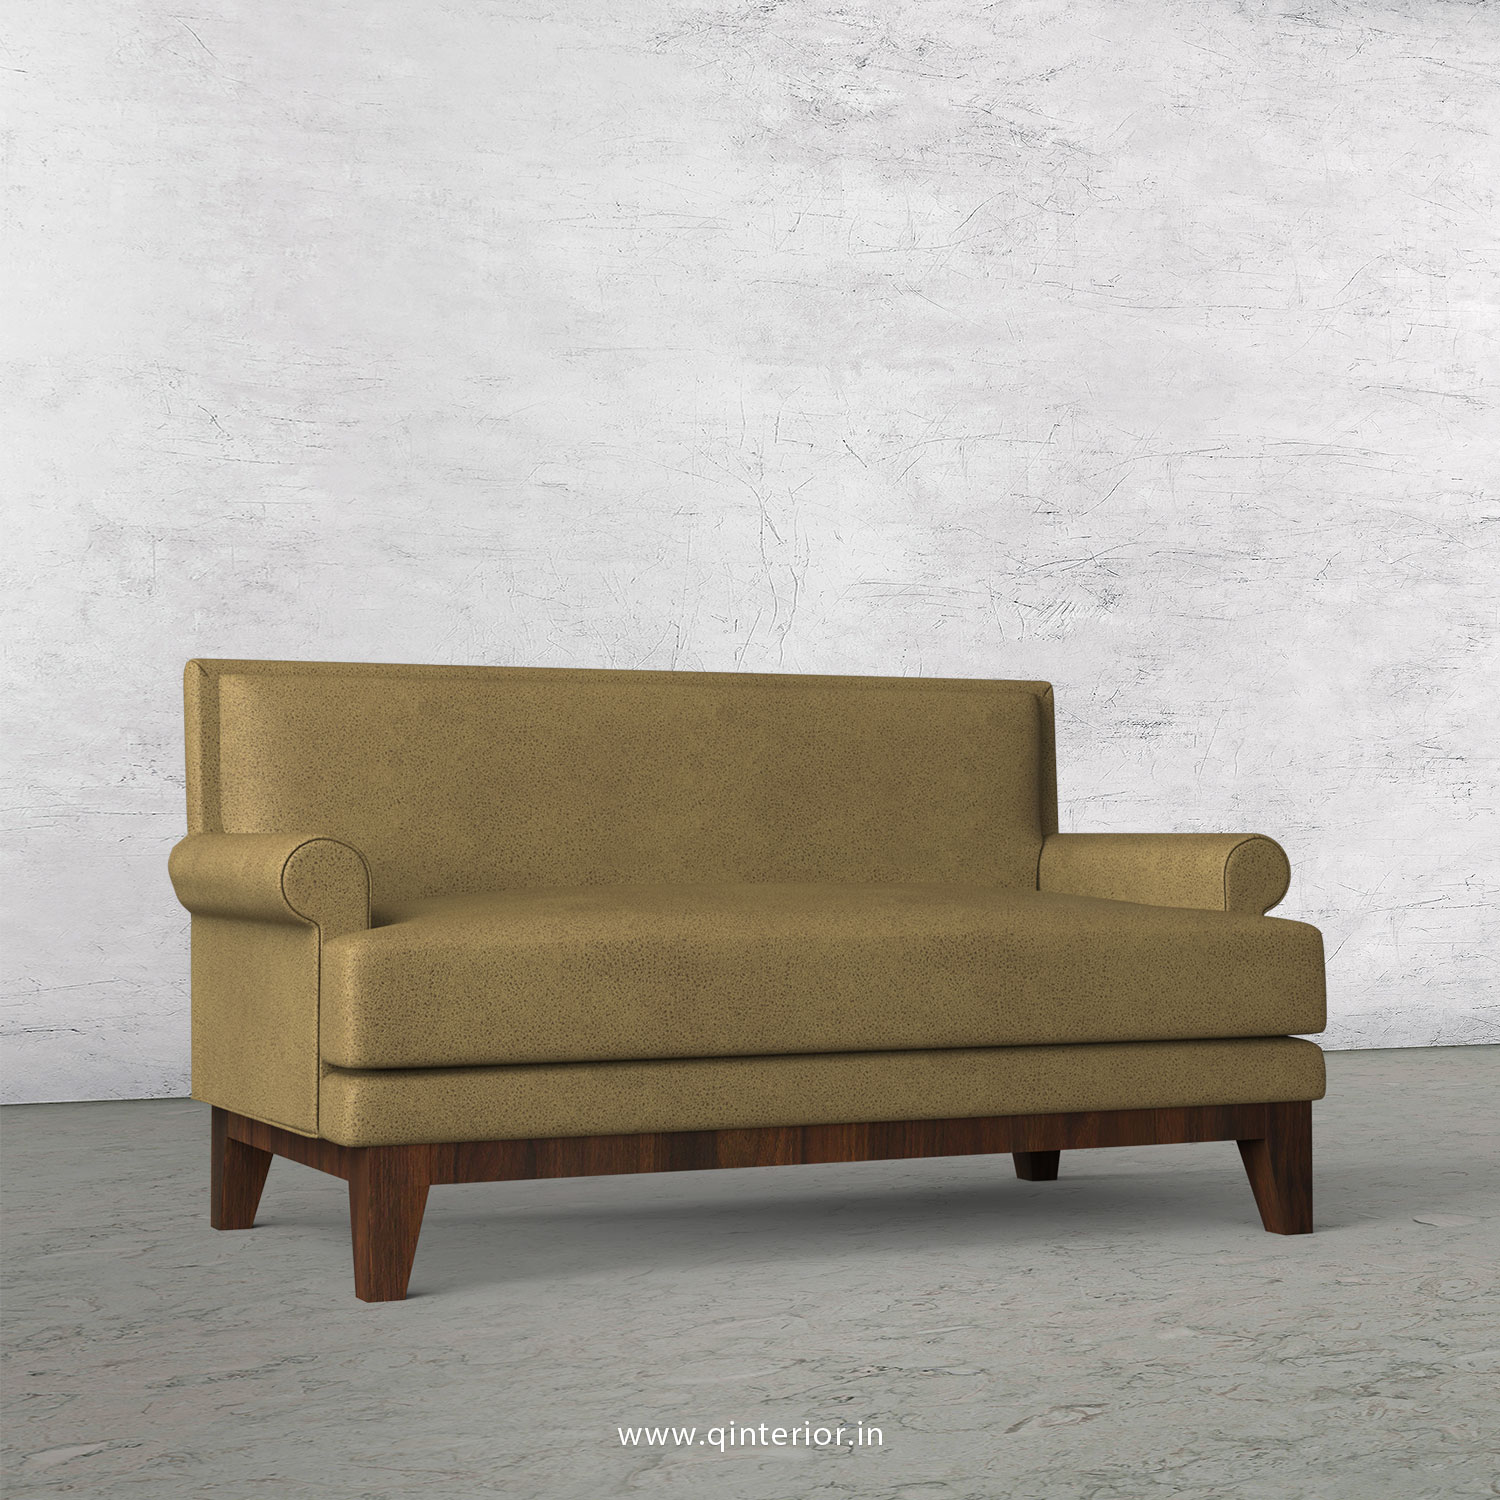 Aviana 2 Seater Sofa in Fab Leather Fabric - SFA001 FL01